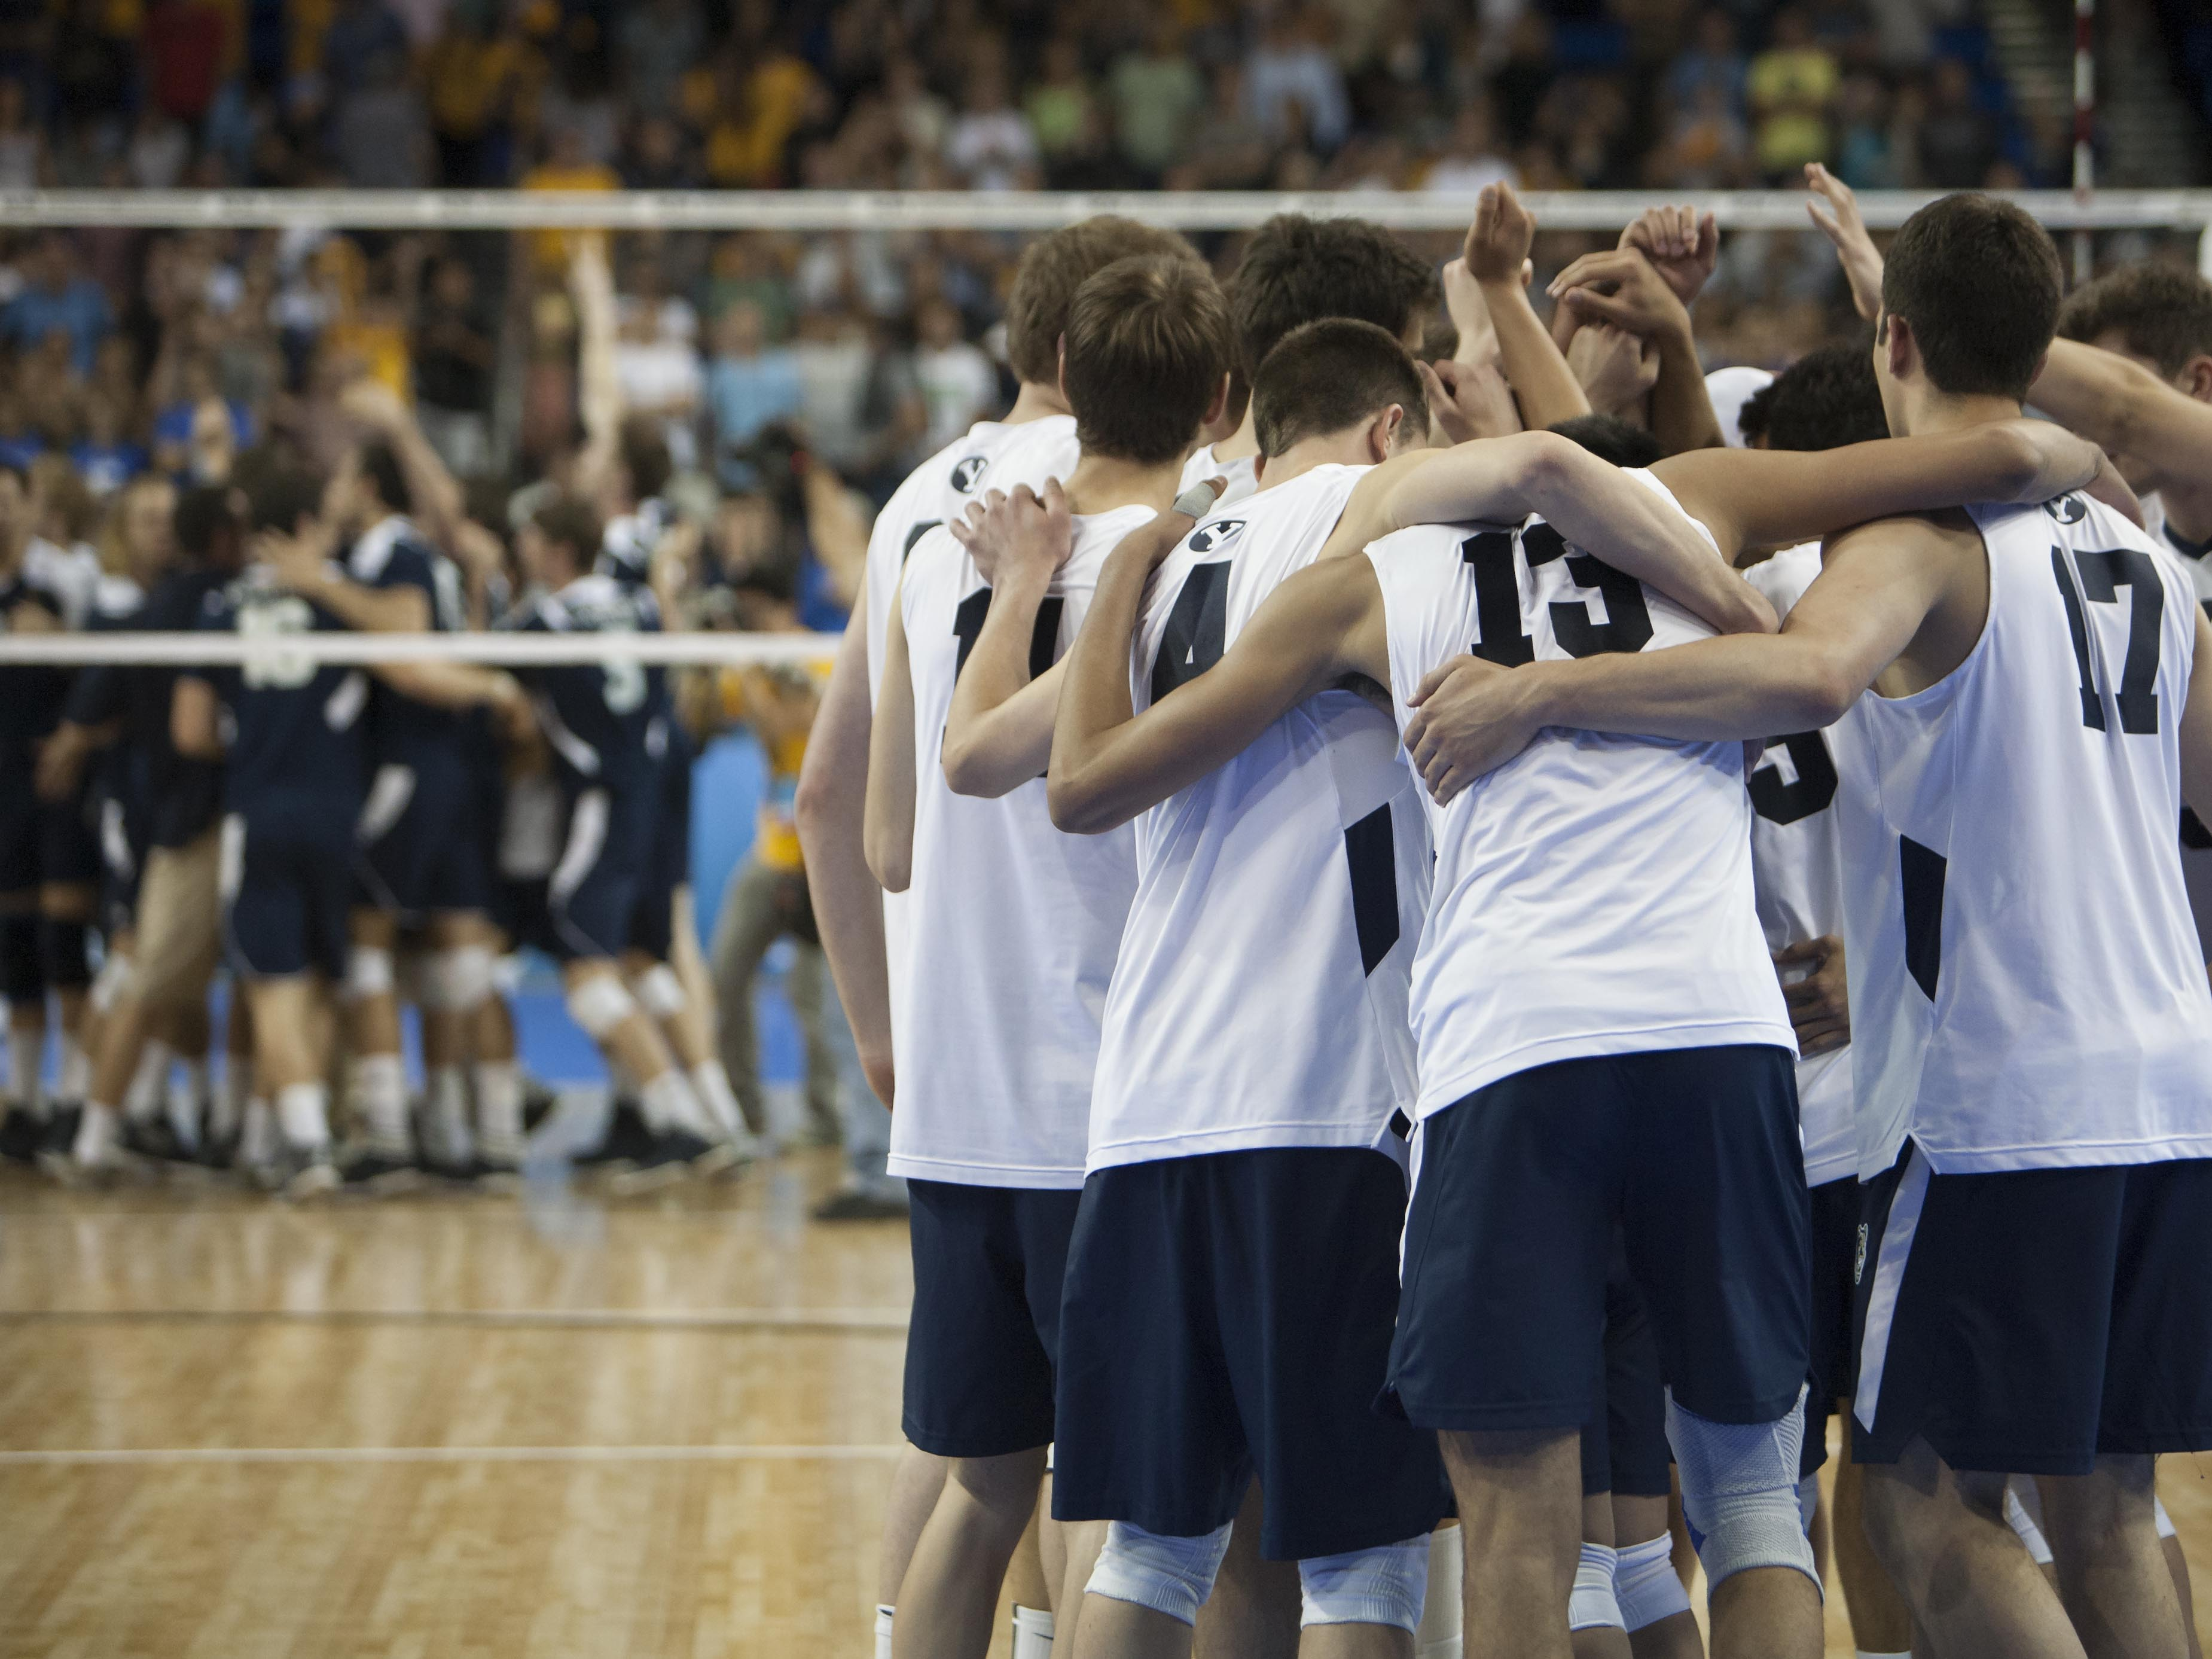 BYU's Men's Volleyball Team huddles together as UCI celebrates their national championship.